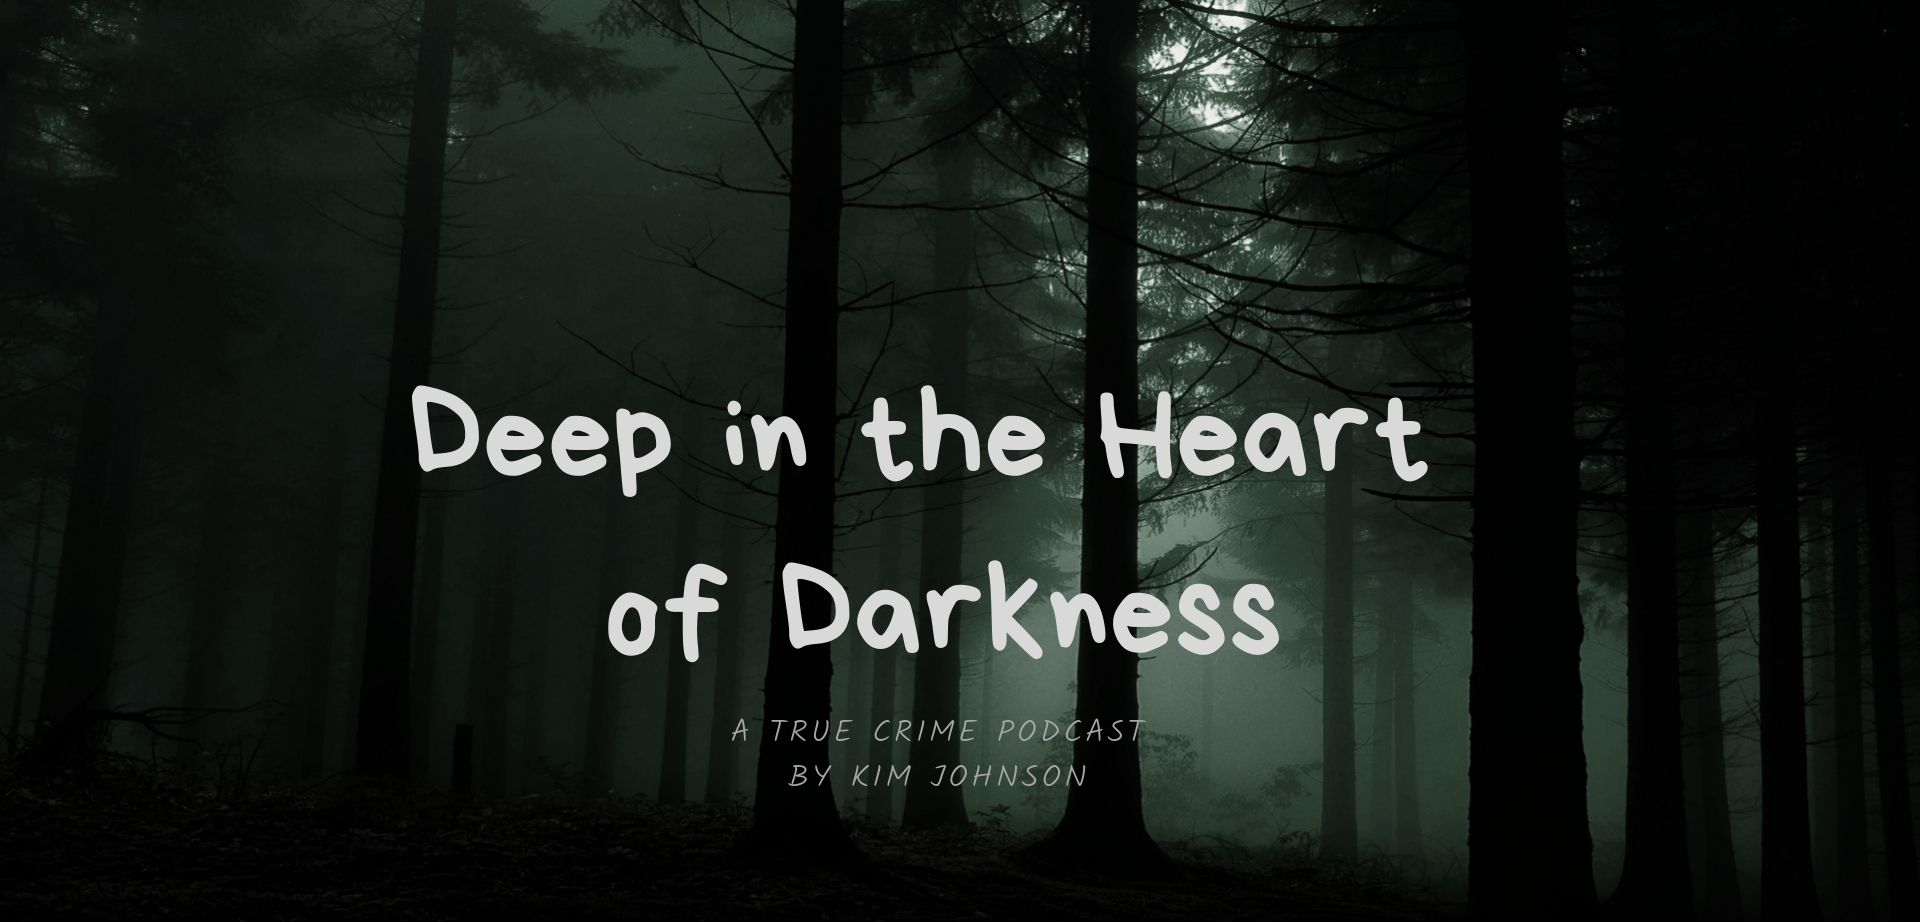 Deep in the Heart of Darkness